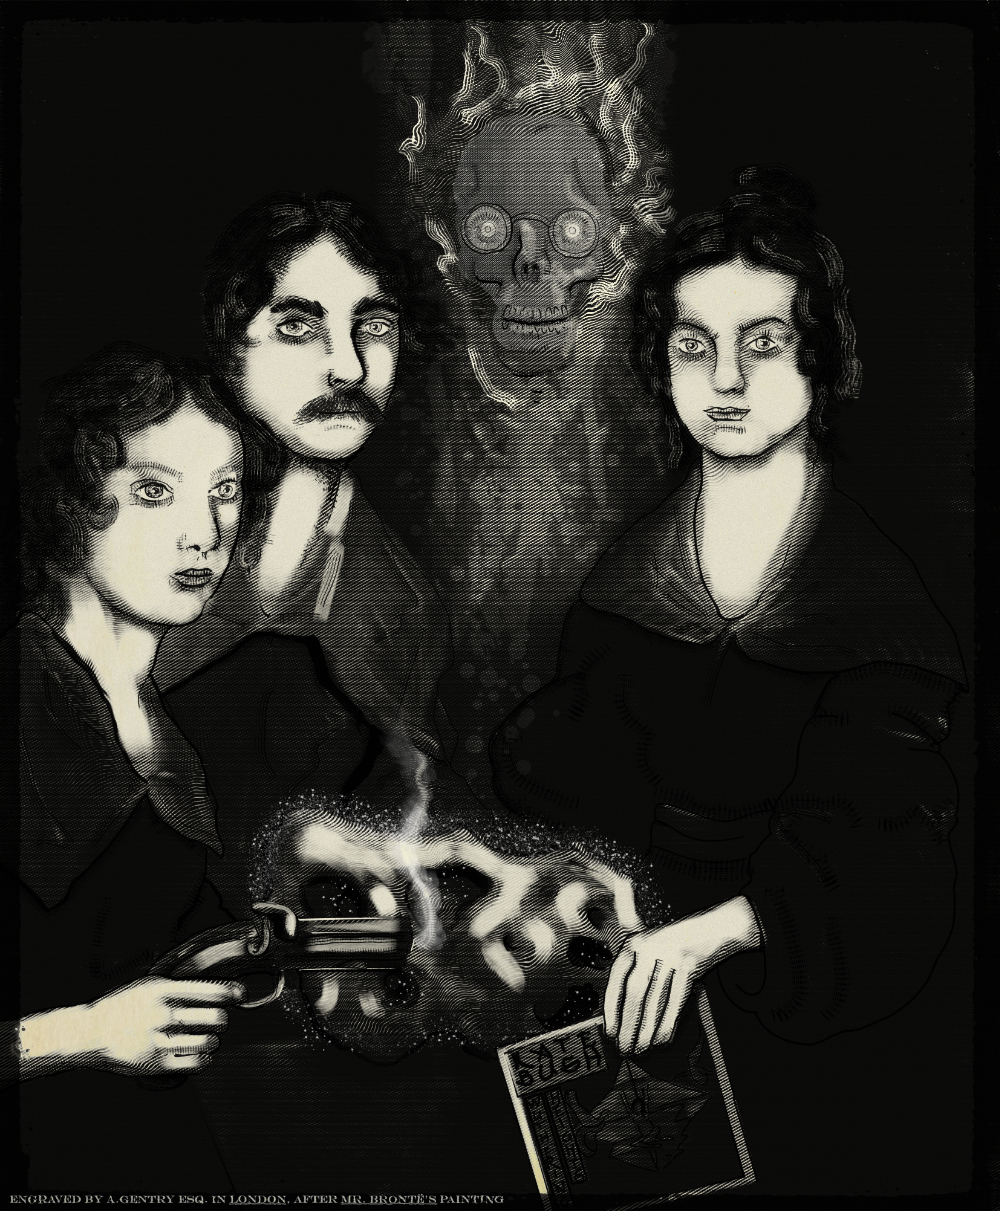 A drawing of the Brontë siblings Emily, Charlotte, Branwell and Anne but Emily is holding a smoking pistol, Charlotte has a moustache, Branwell is almost completely transparent, and Anne is holding a record sleeve of Wuthering Heights by Kate Bush. There is a glowing meteorite on the table in front of them.